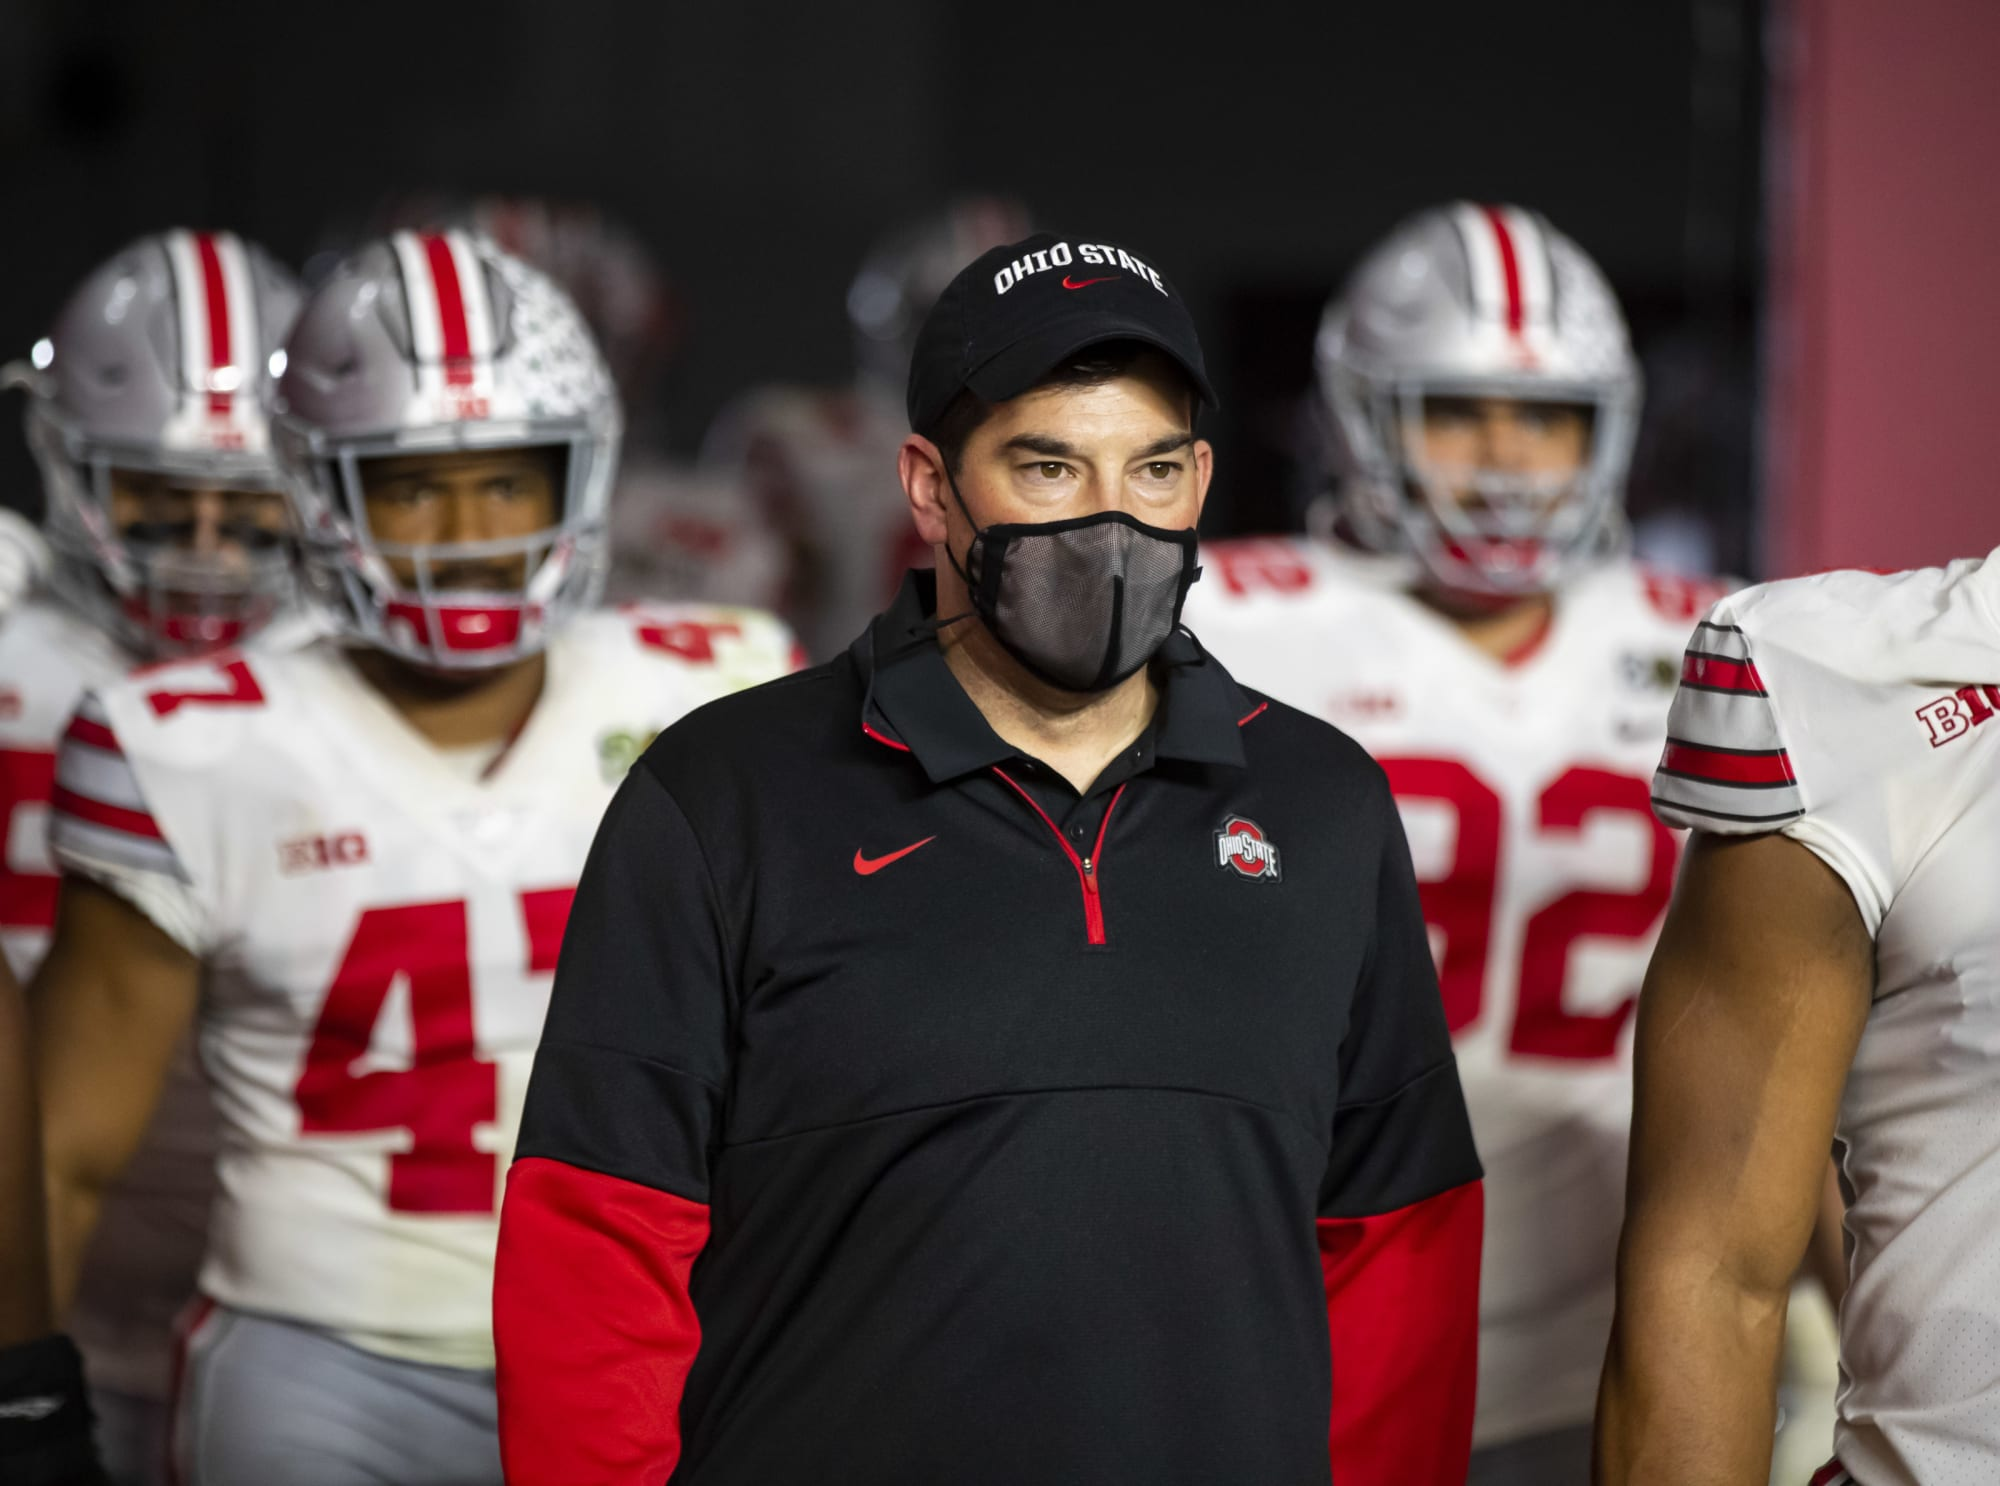 Ohio State football adds 4-star WR to impressive 2022 class